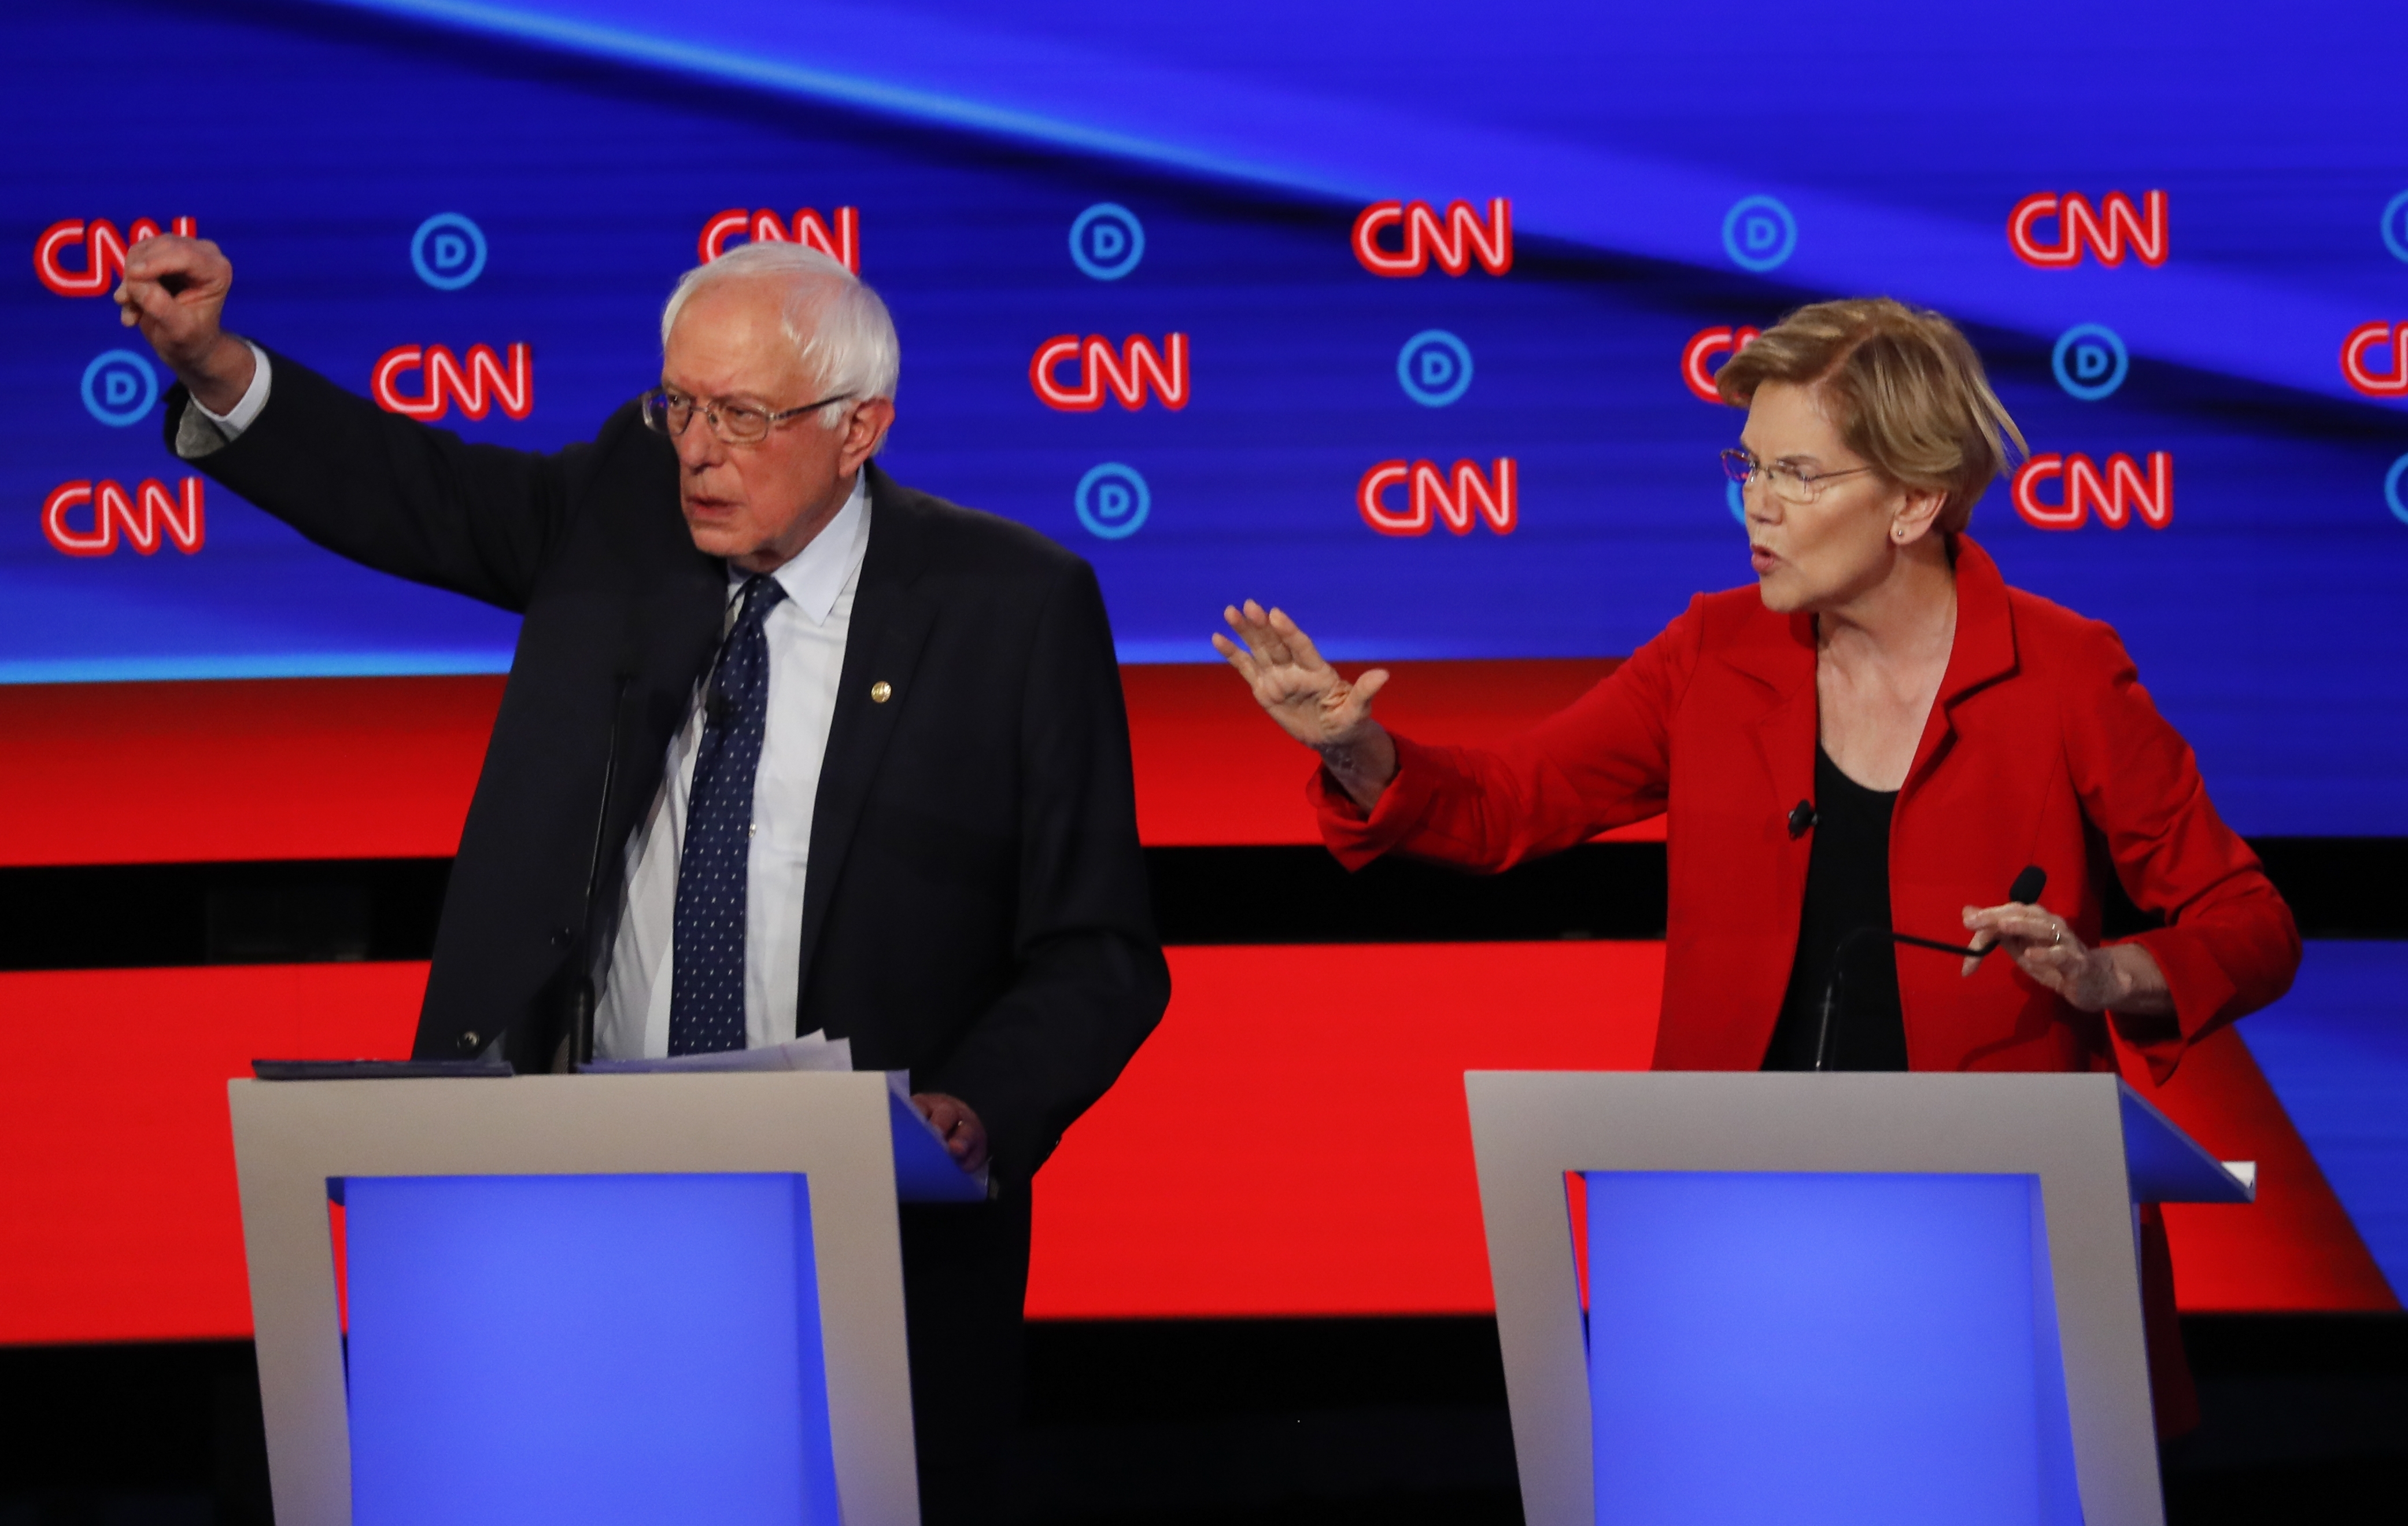 Sen. Bernie Sanders has denied an allegation from Sen. Elizabeth Warren that he told her in 2018 that a woman couldn't win the White House. They are seen together in the July 30, 2019 Democratic primary debate.